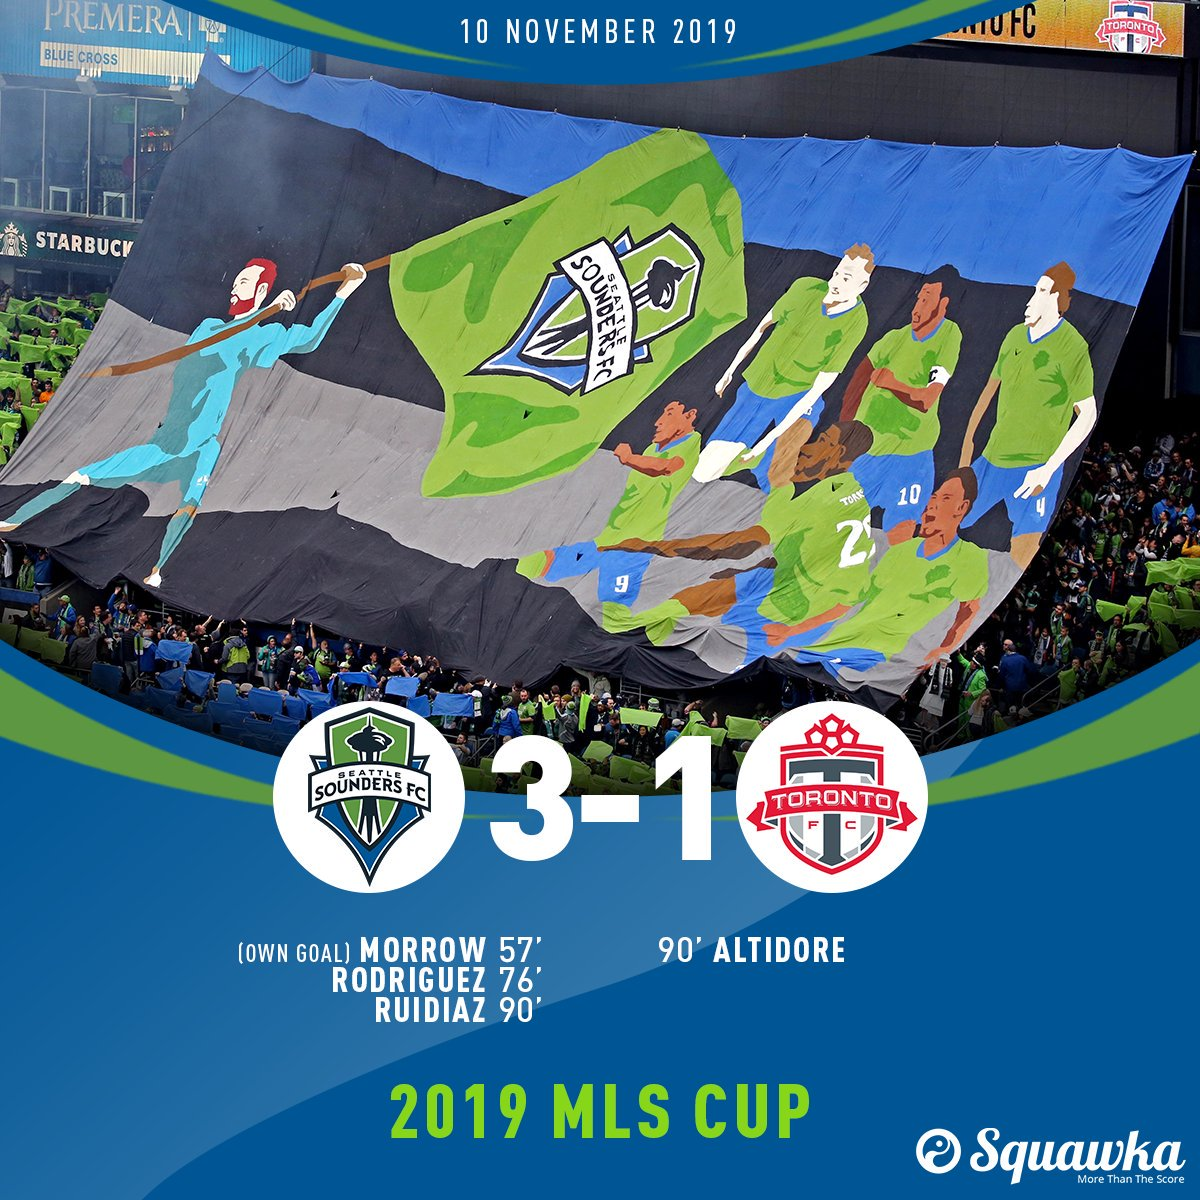 OFFICIAL: @SoundersFC are the 2019 #MLSCup champions. 🏆